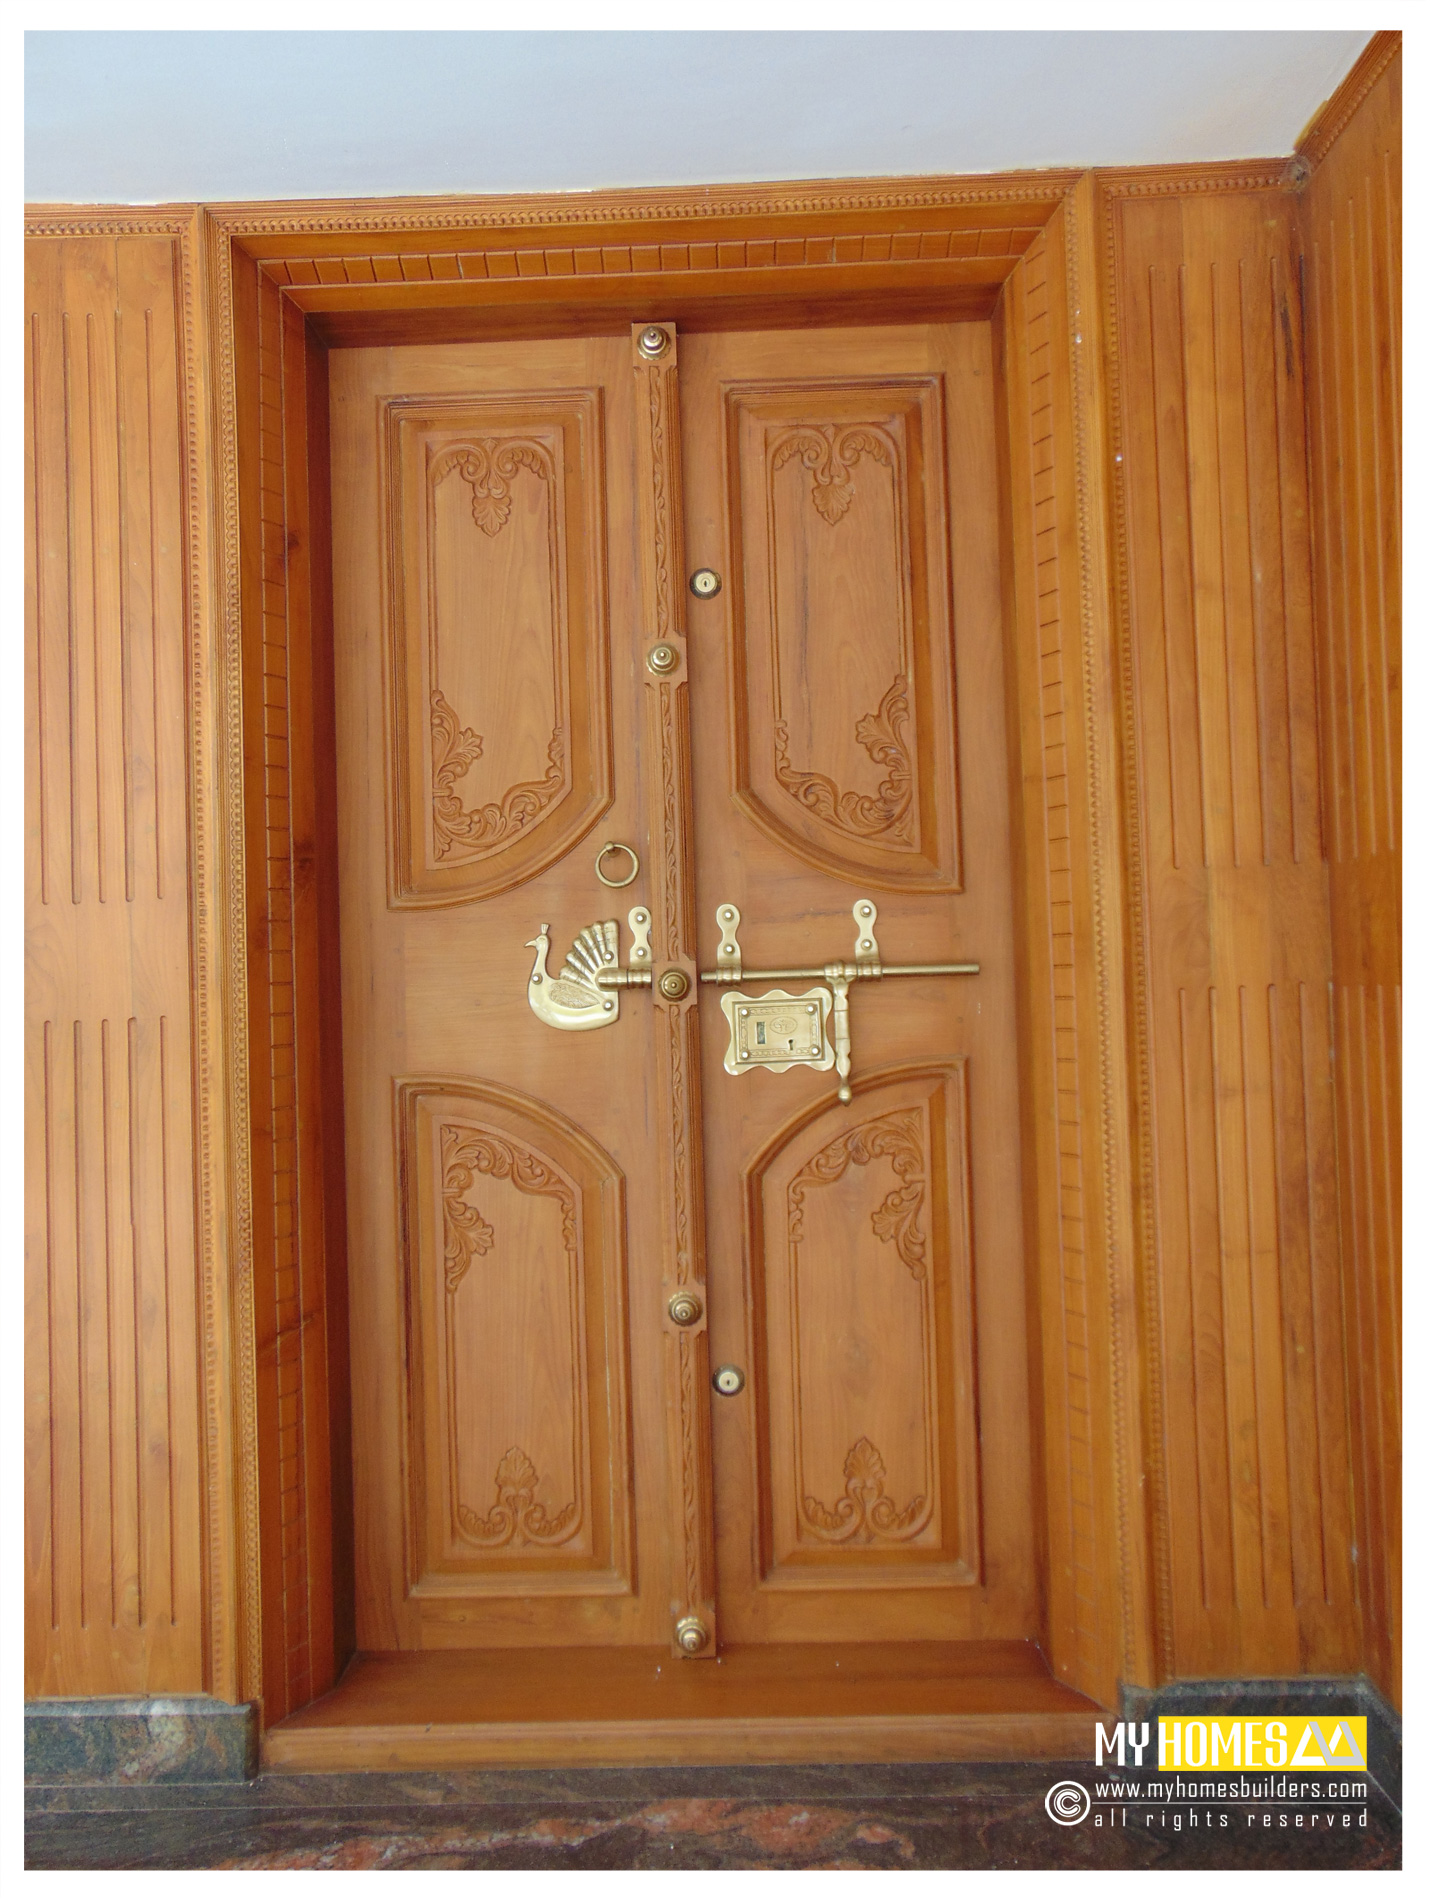 New idea for homes main door designs in kerala india for Latest design for main door